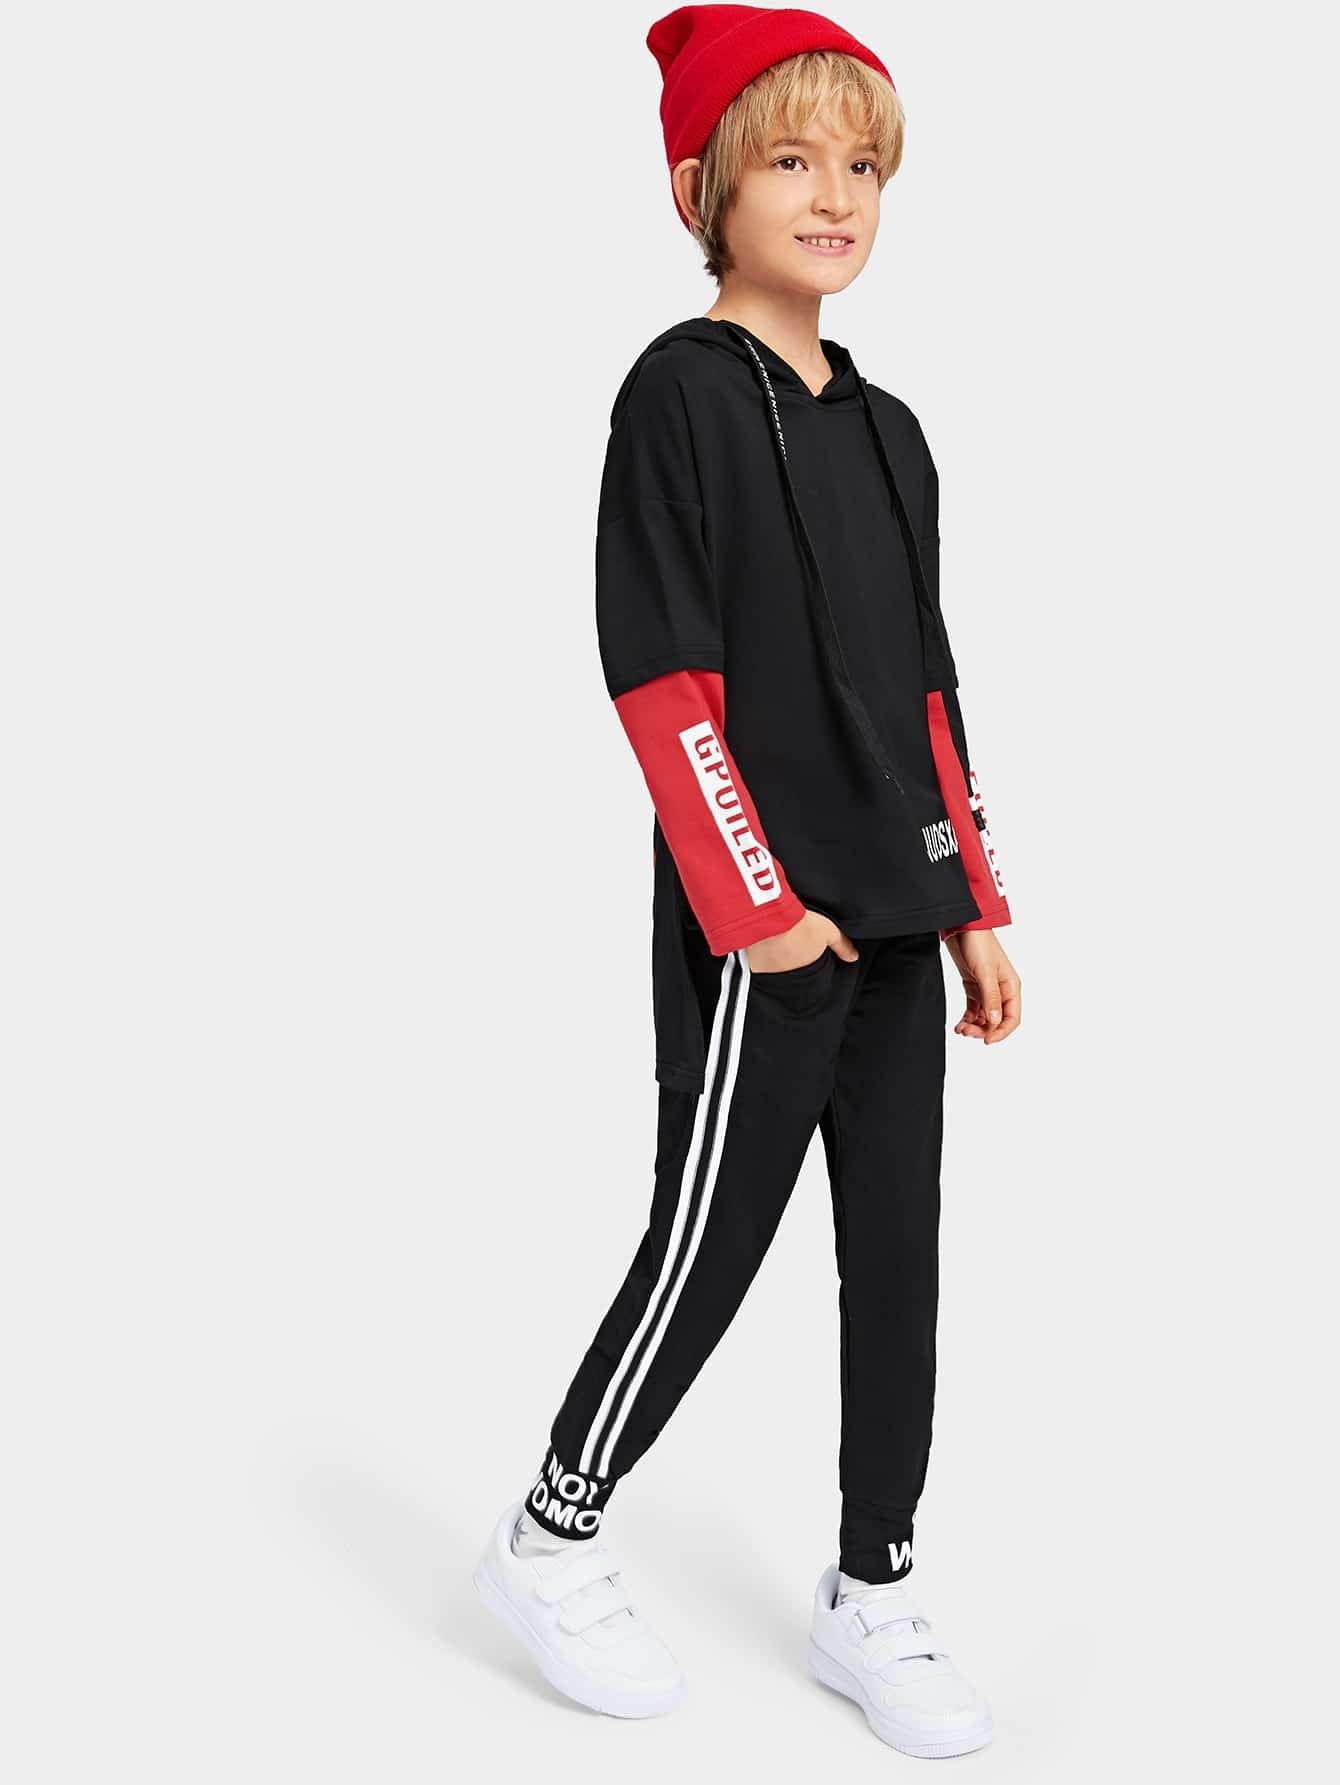 Toddler Boys Color Block Sleeve Letter Print Hoodie With Pants Toddler Boys Color Block Sleeve Letter Print Hoodie With Pants